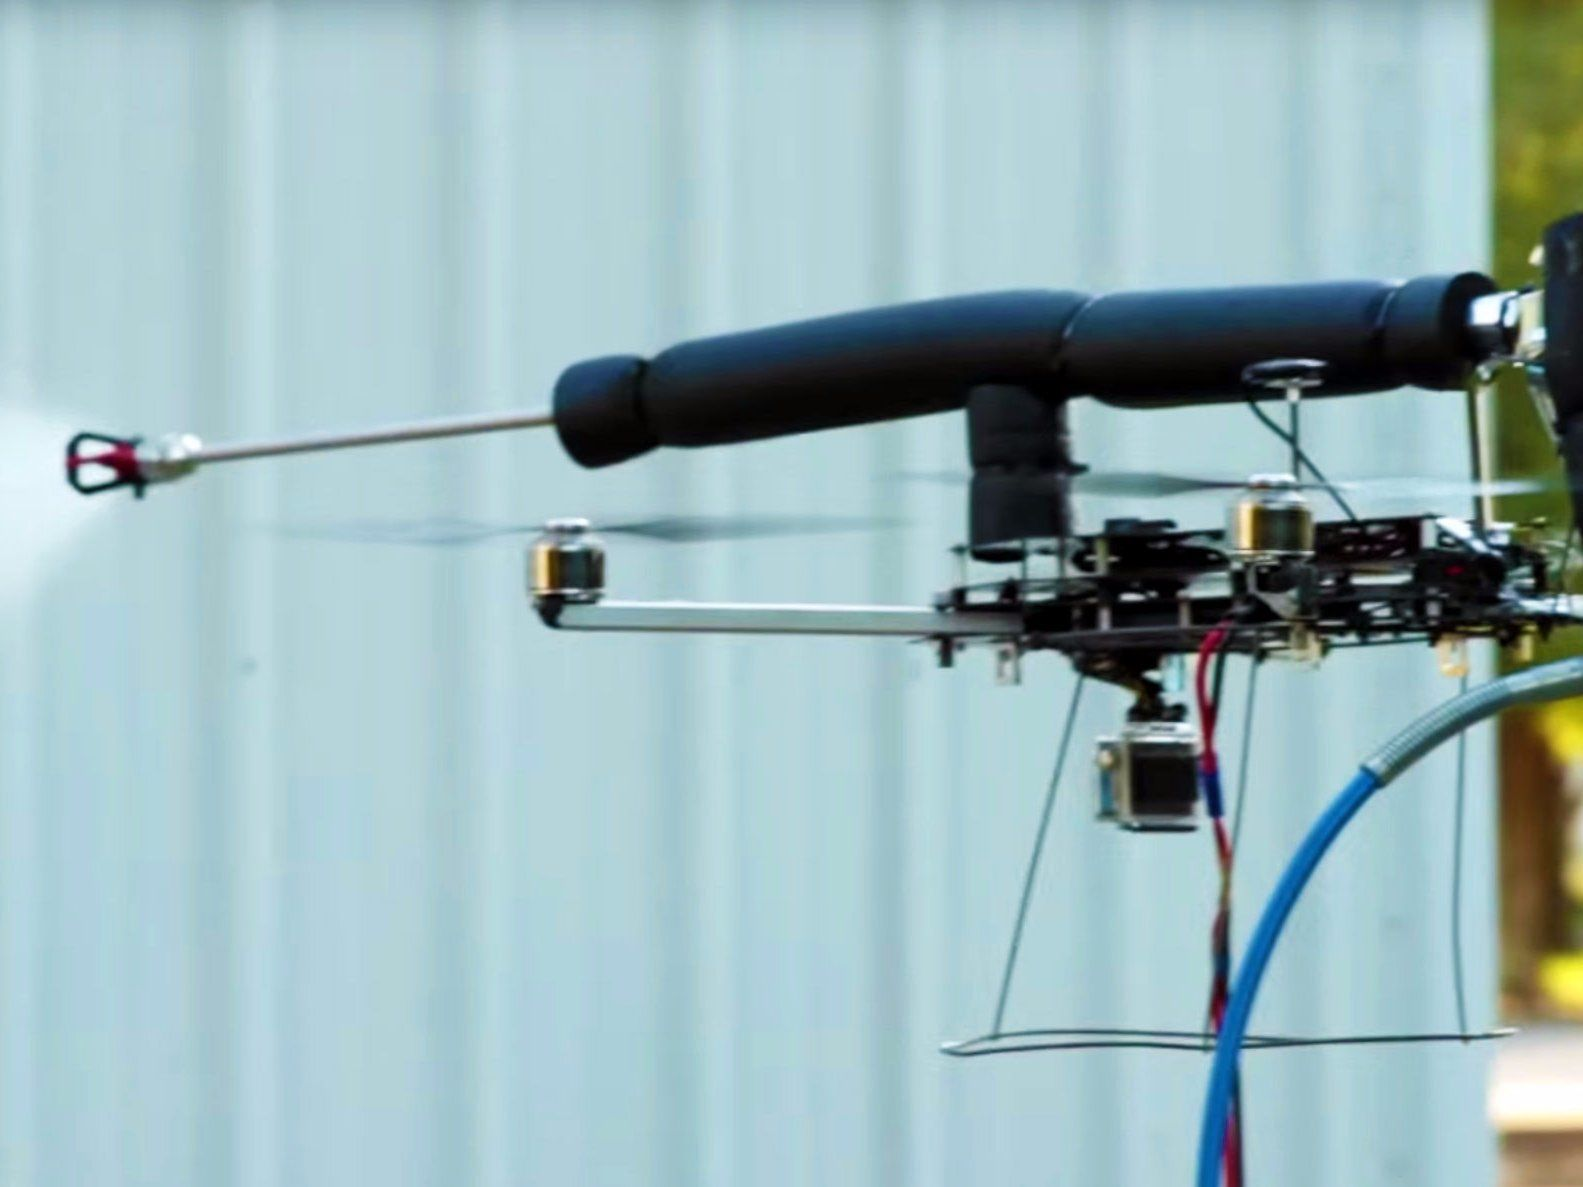 [New post] This drone can paint your house better than you can(3623)